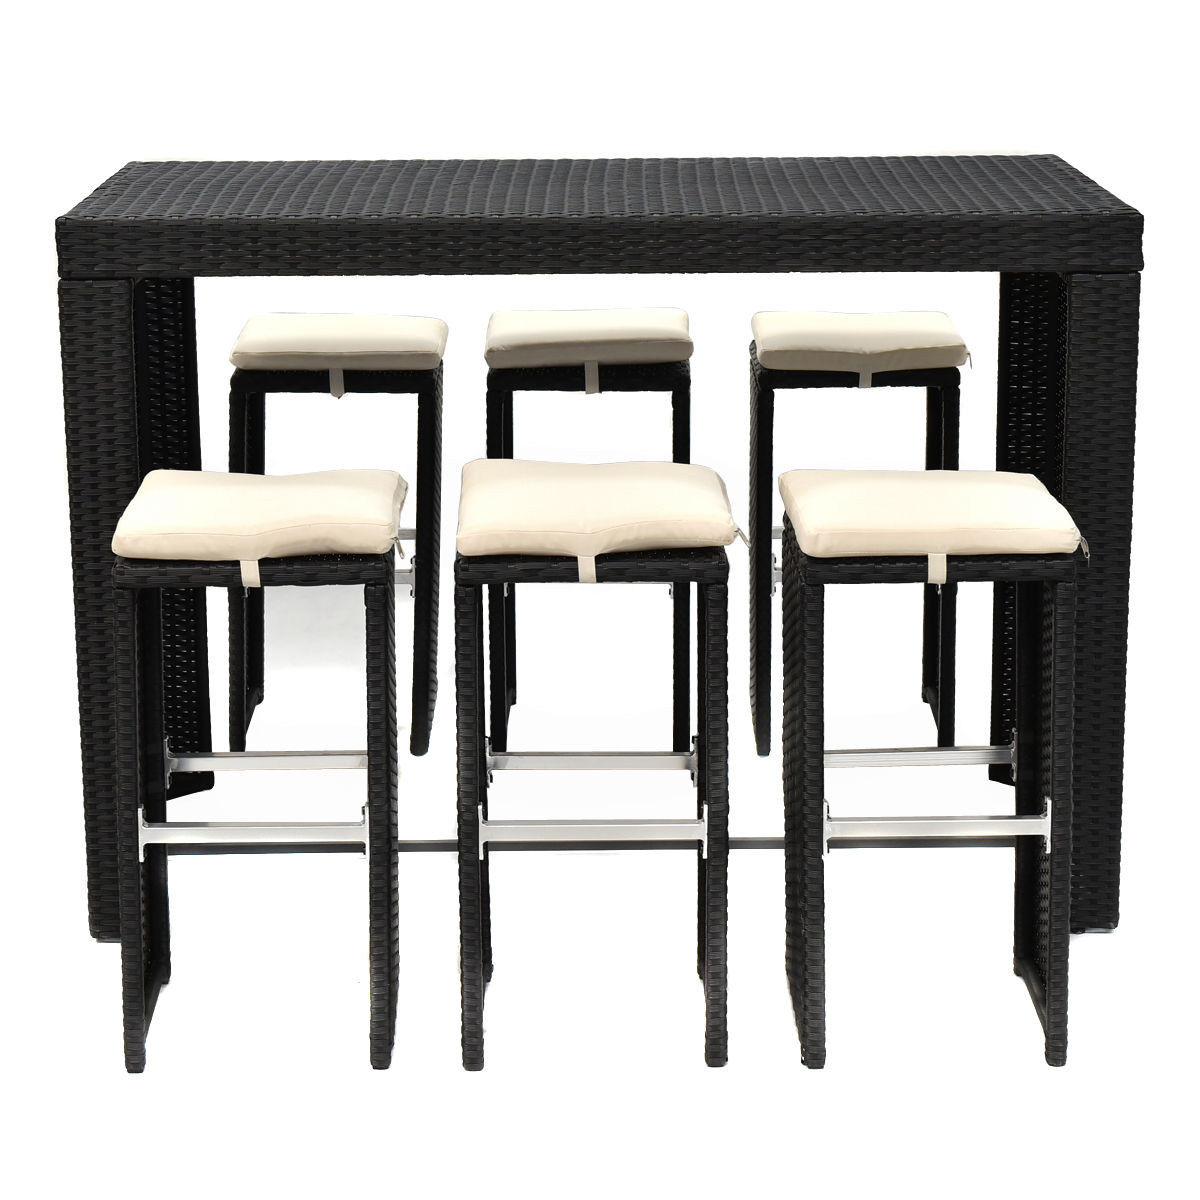 GHP Black Rattan Wicker Polyester Fabric Bar Table & 6-Pcs Bar Stools Dining Set